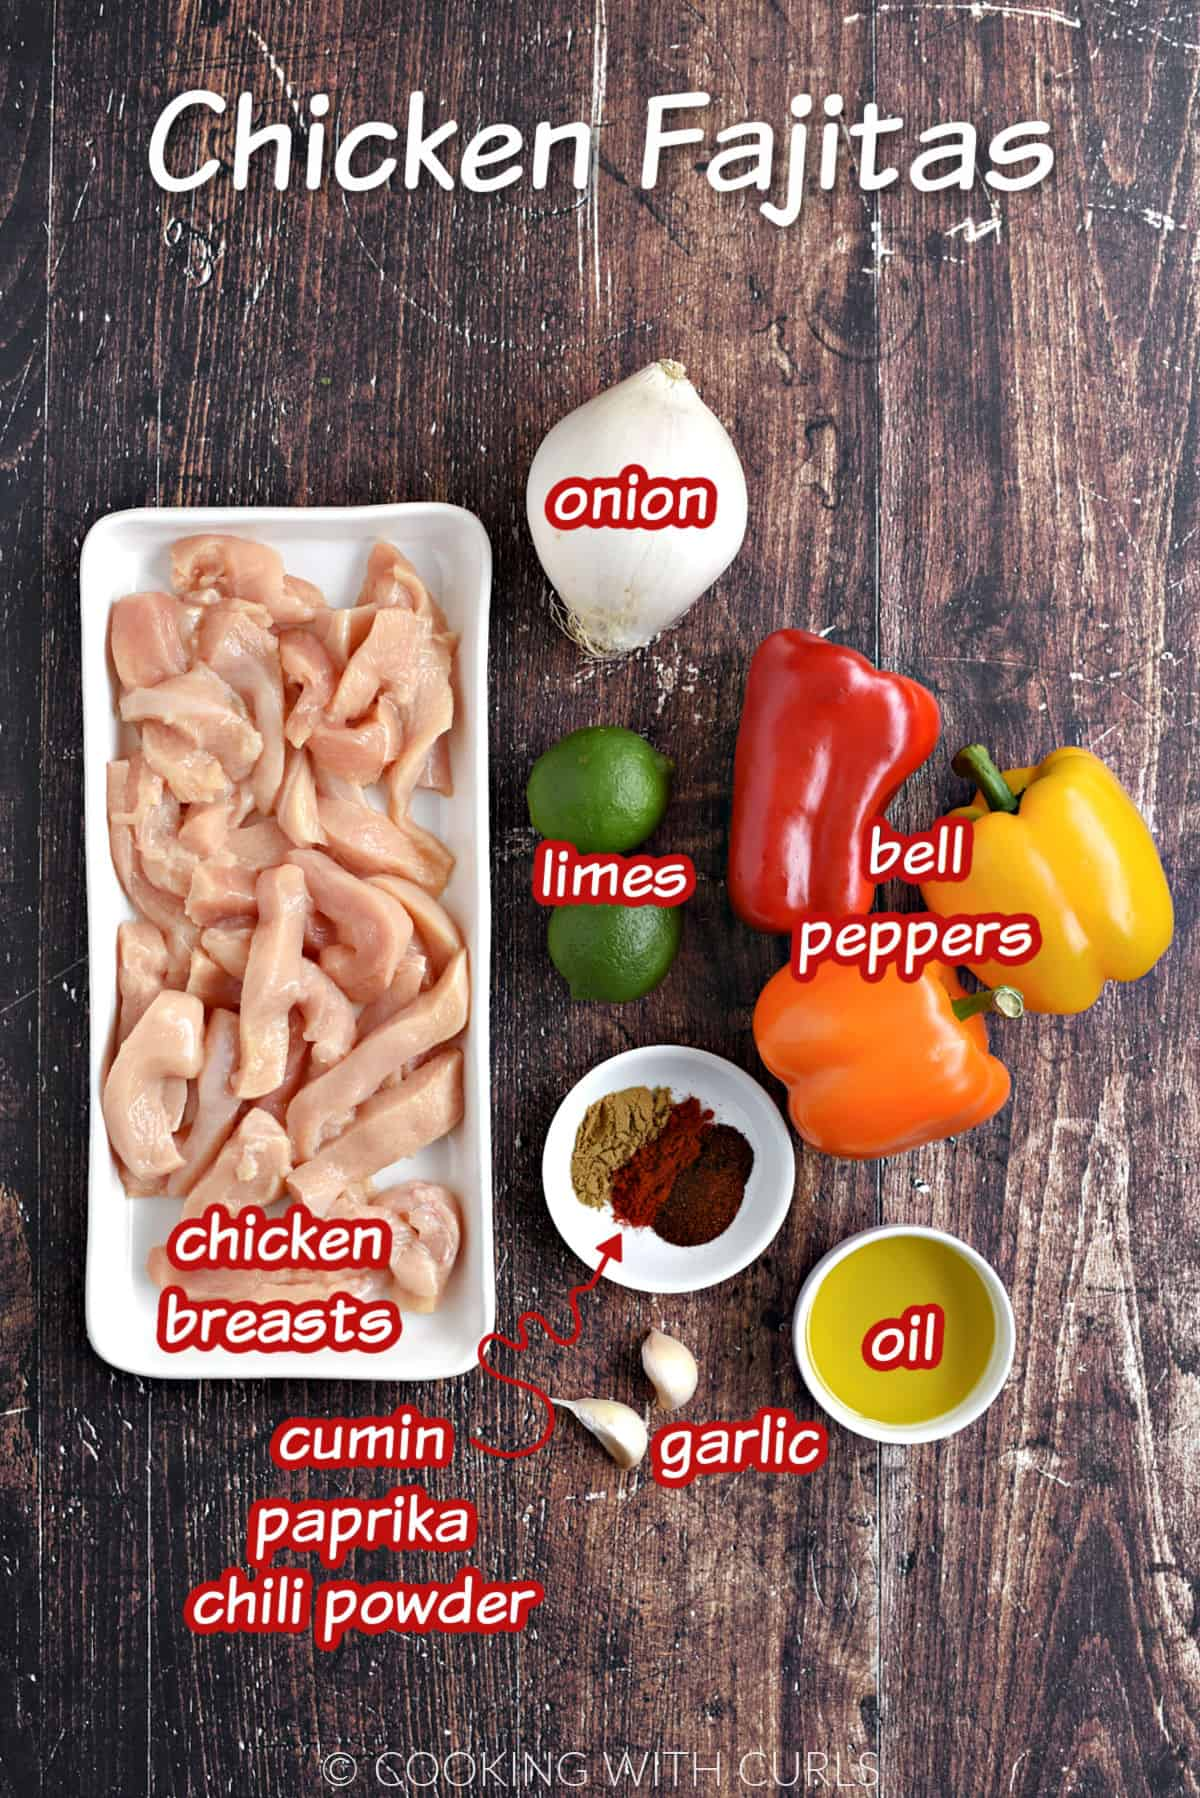 Chicken strips, white onion, two limes, two garlic cloves, olive oil,  three bell peppers, two limes, cumin, paprika, and chili powder.